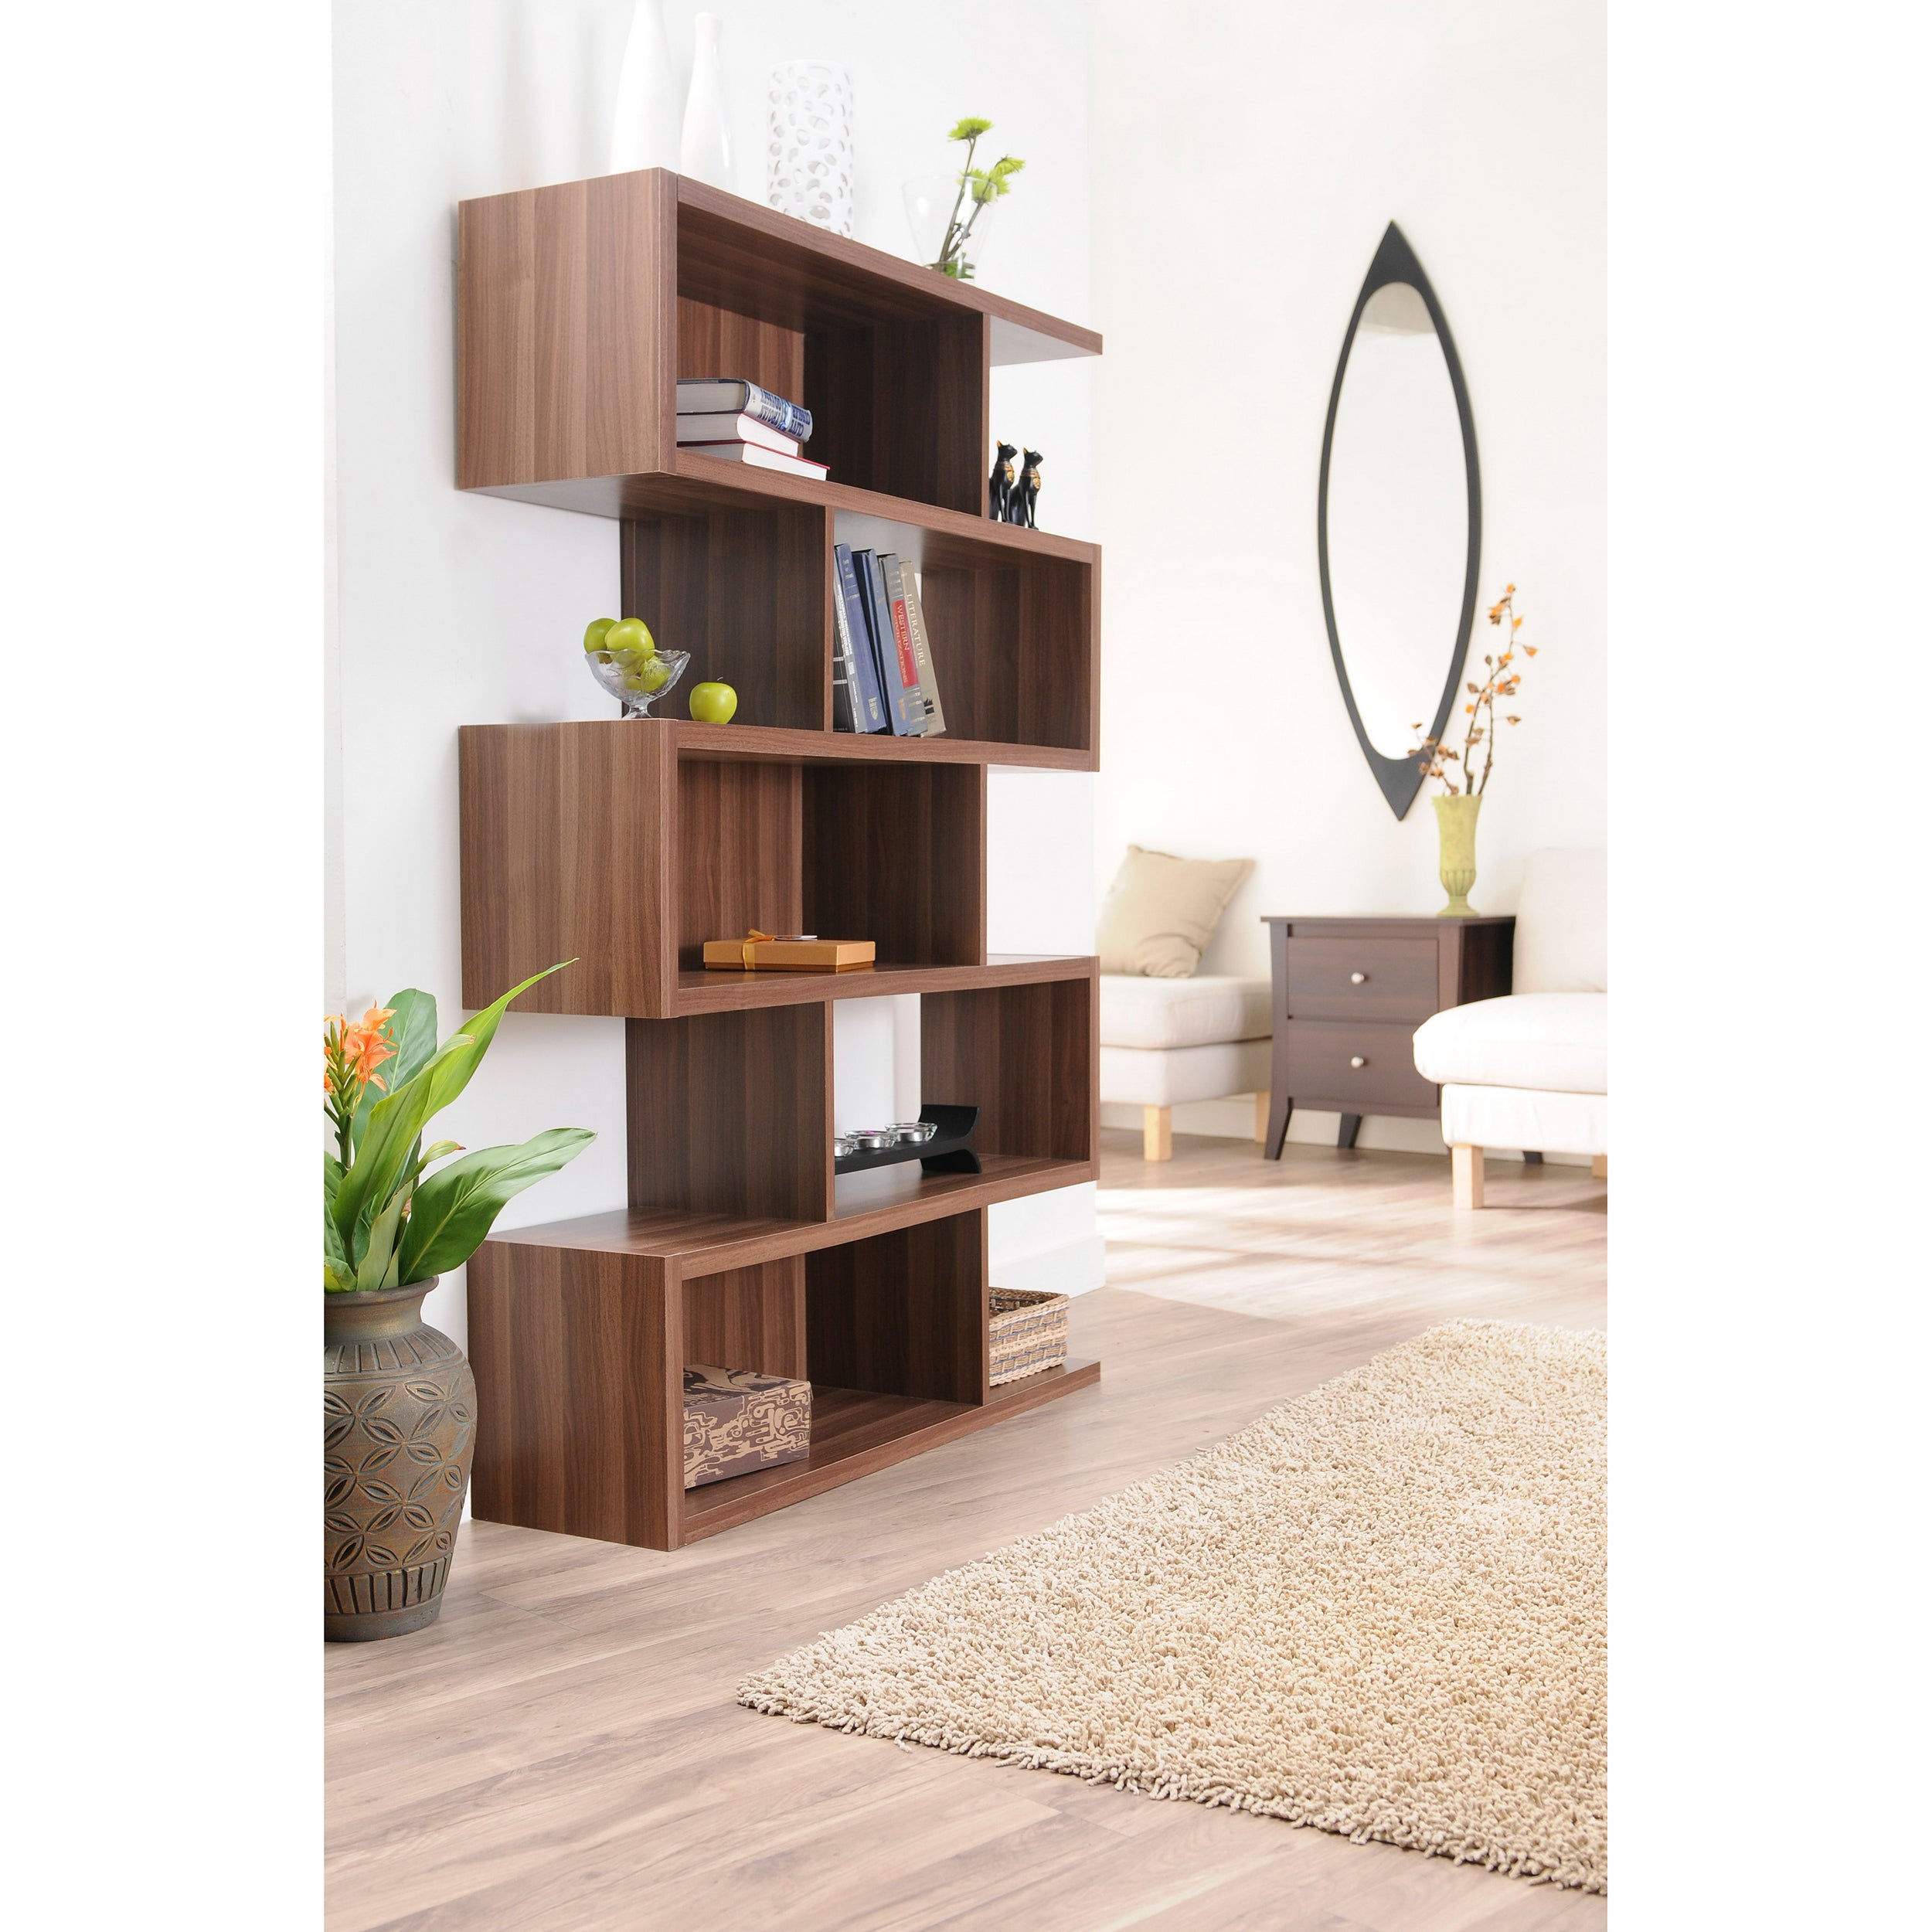 Shop Furniture of America Karrise Walnut Display Shelf/ Bookcase/ Room Divider - Free Shipping Today - Overstock.com - 5483409